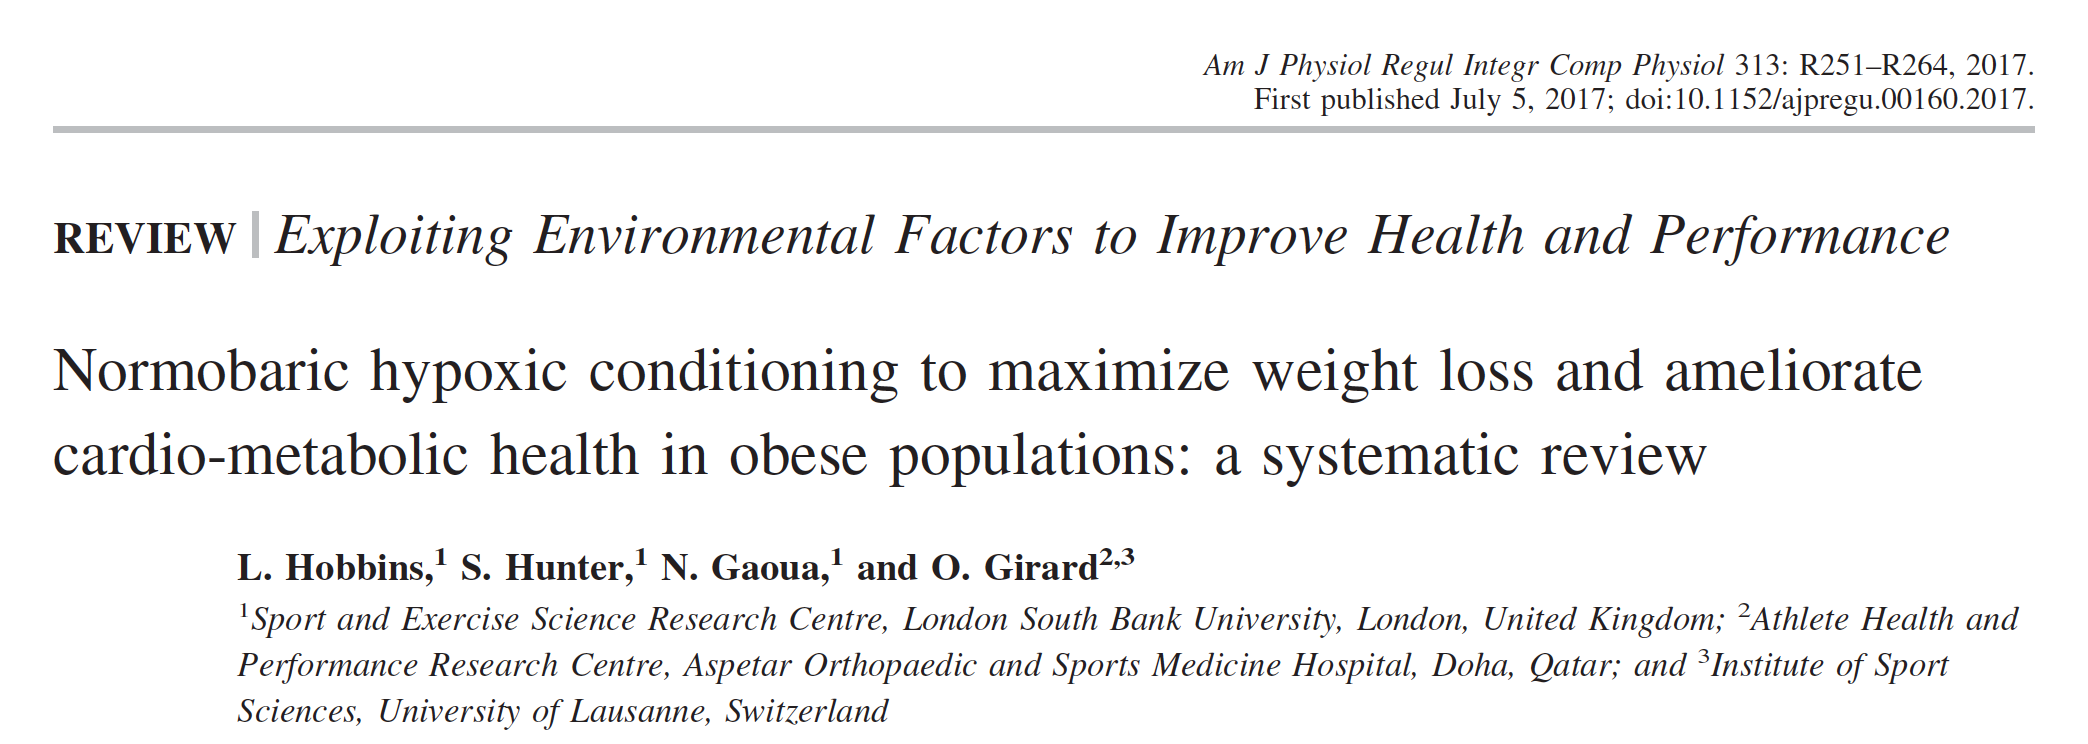 - Hypoxia has positive impacts on insulin and blood glucose levels while also increasing energy expenditure